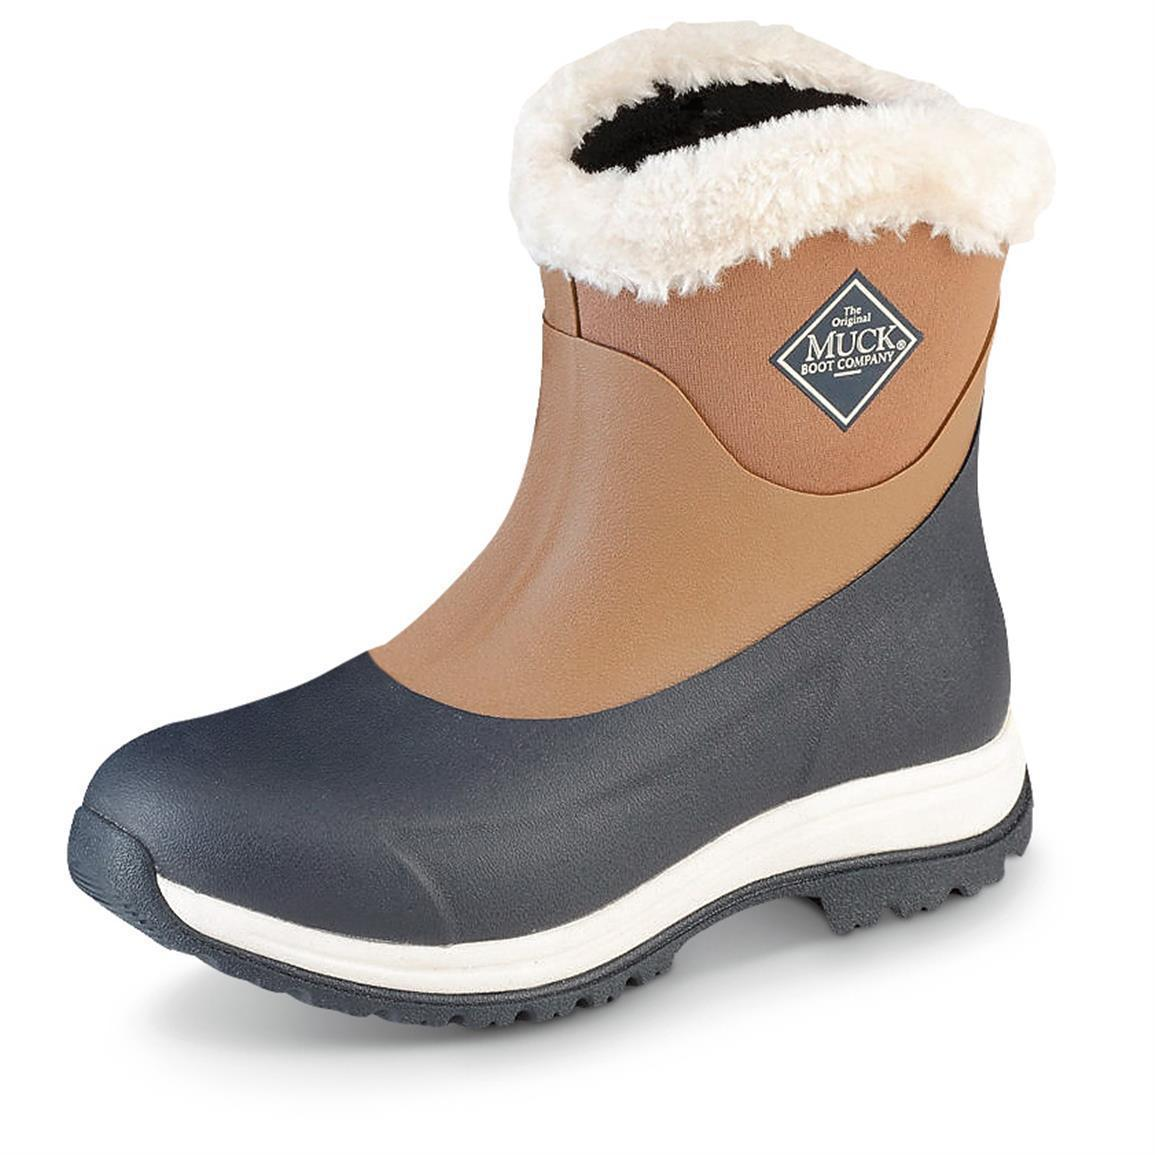 Muck Arctic Apres AP8-201 winter otter navy non-safety casual winter AP8-201 boot Größe 3-9 6c7739